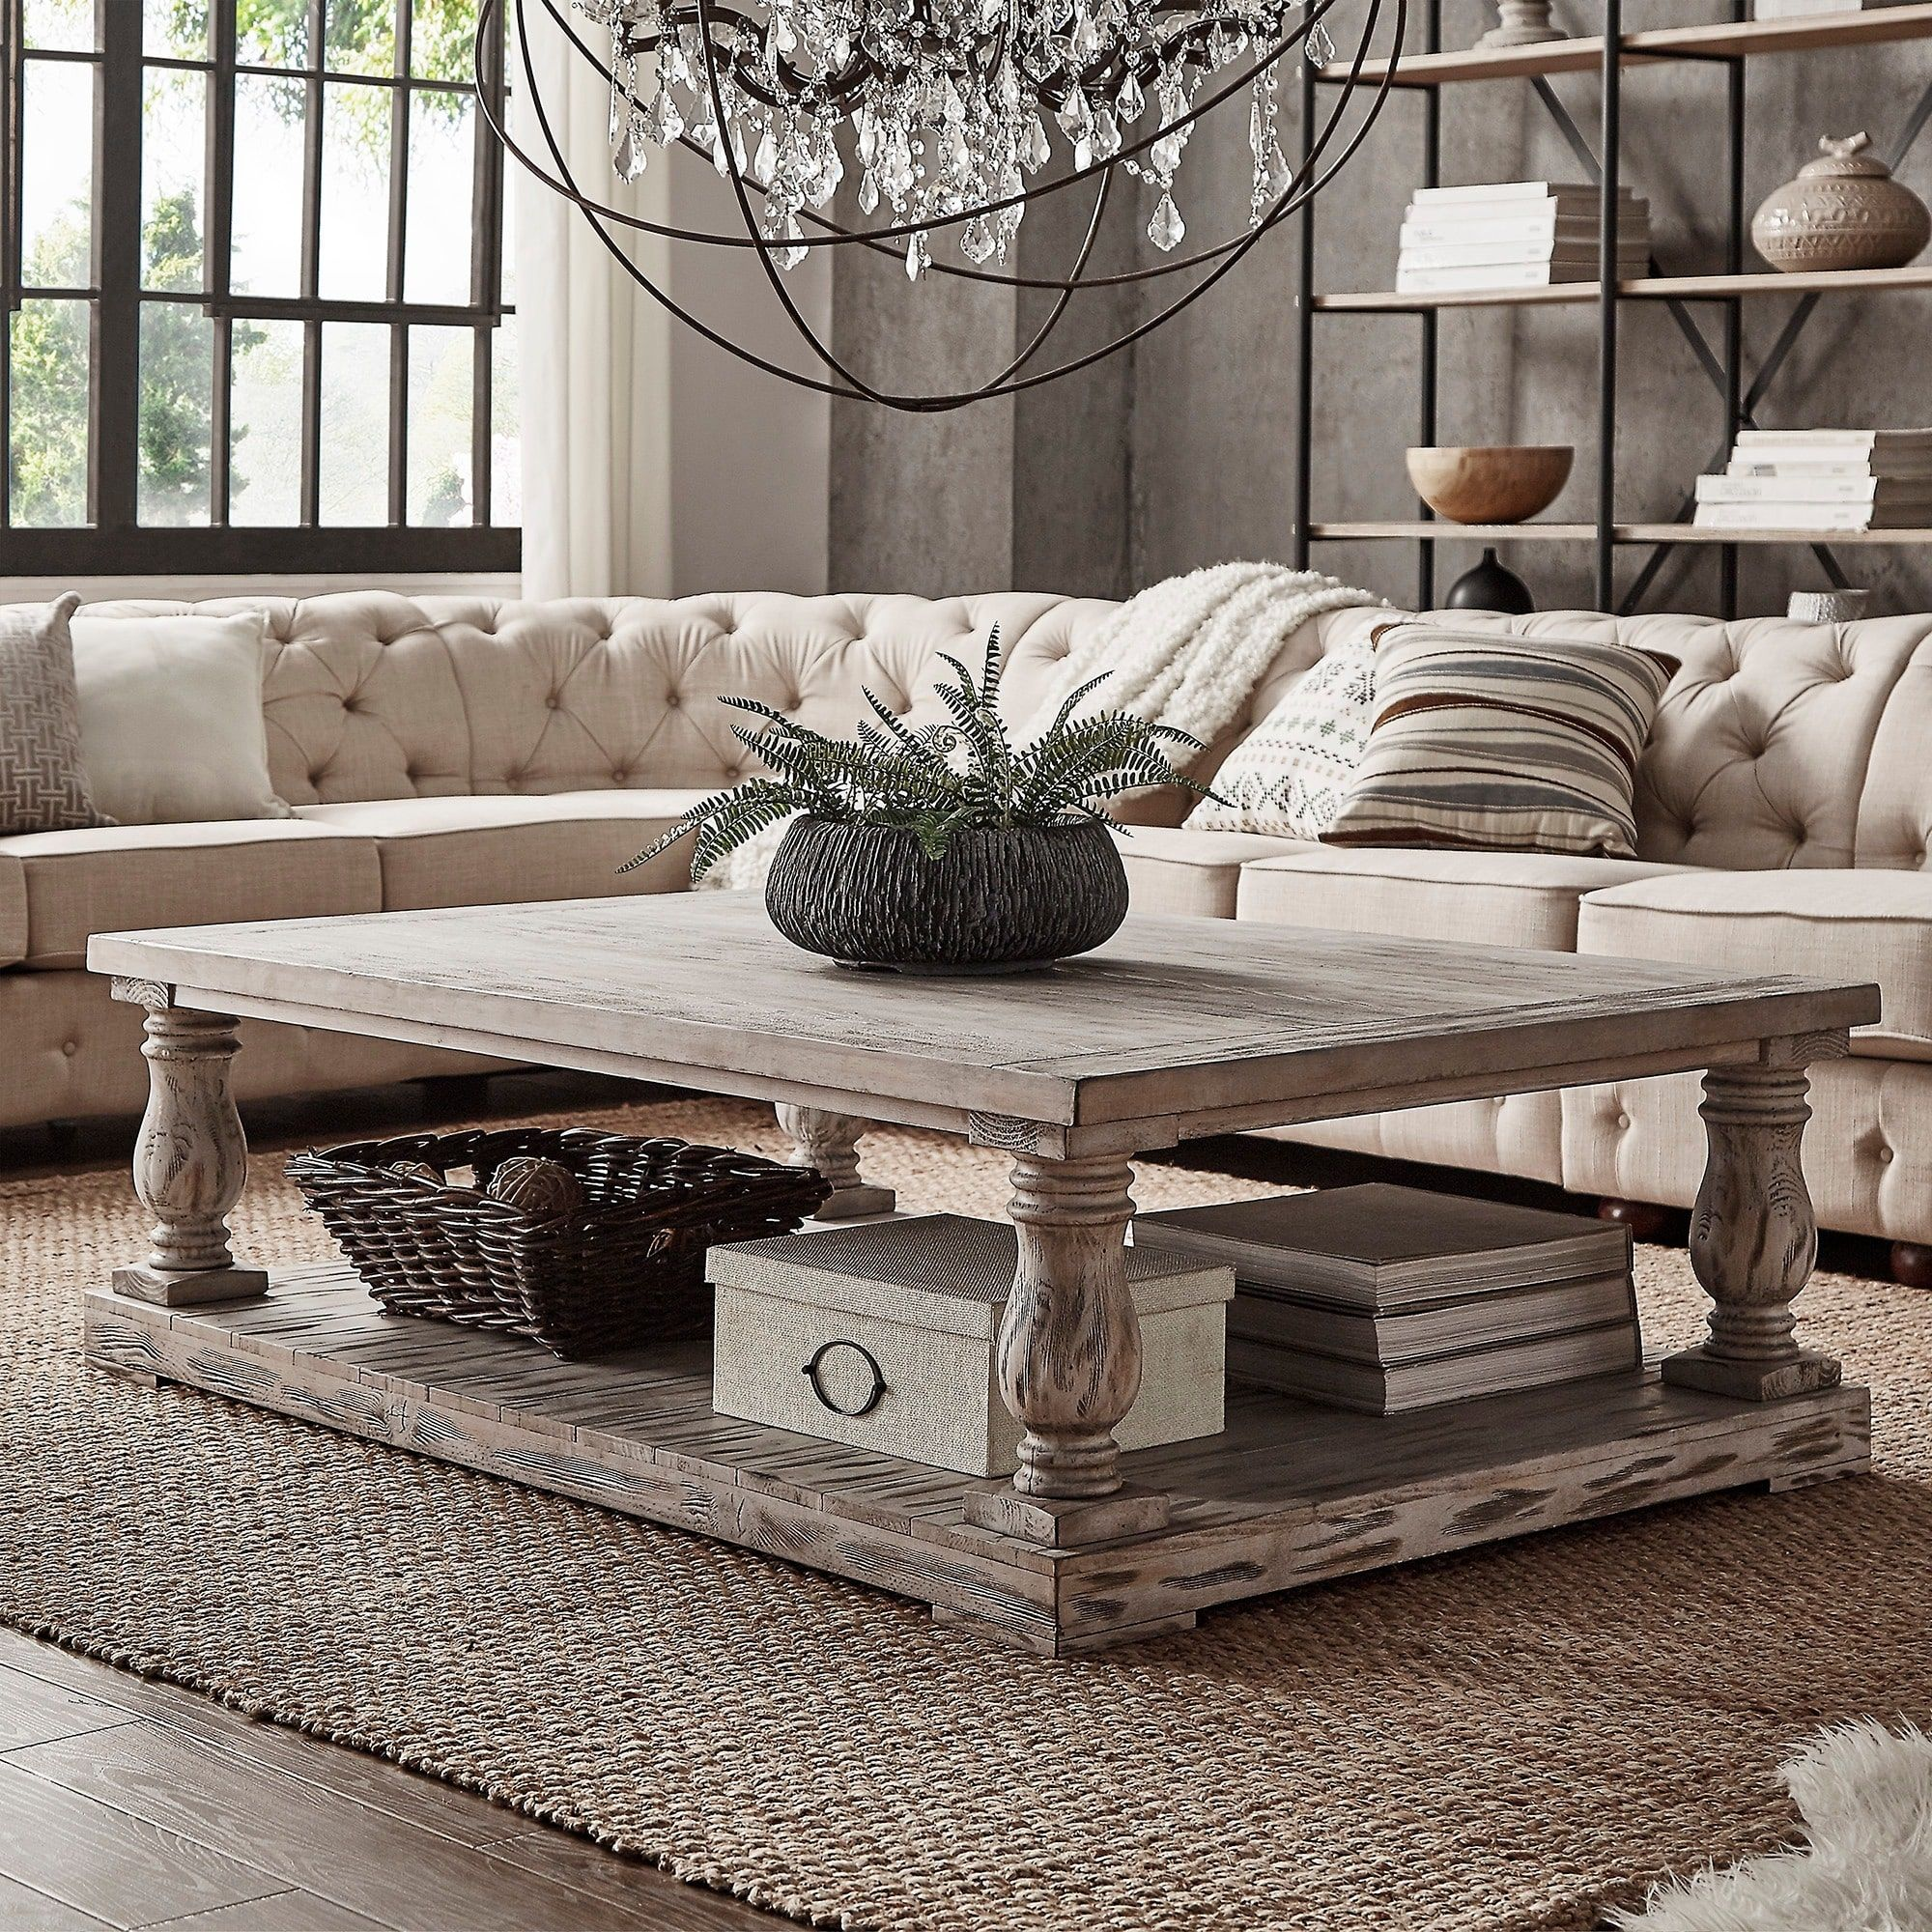 Edmaire Rustic Baluster 60inch Coffee Brown Table by iNSPIRE Q